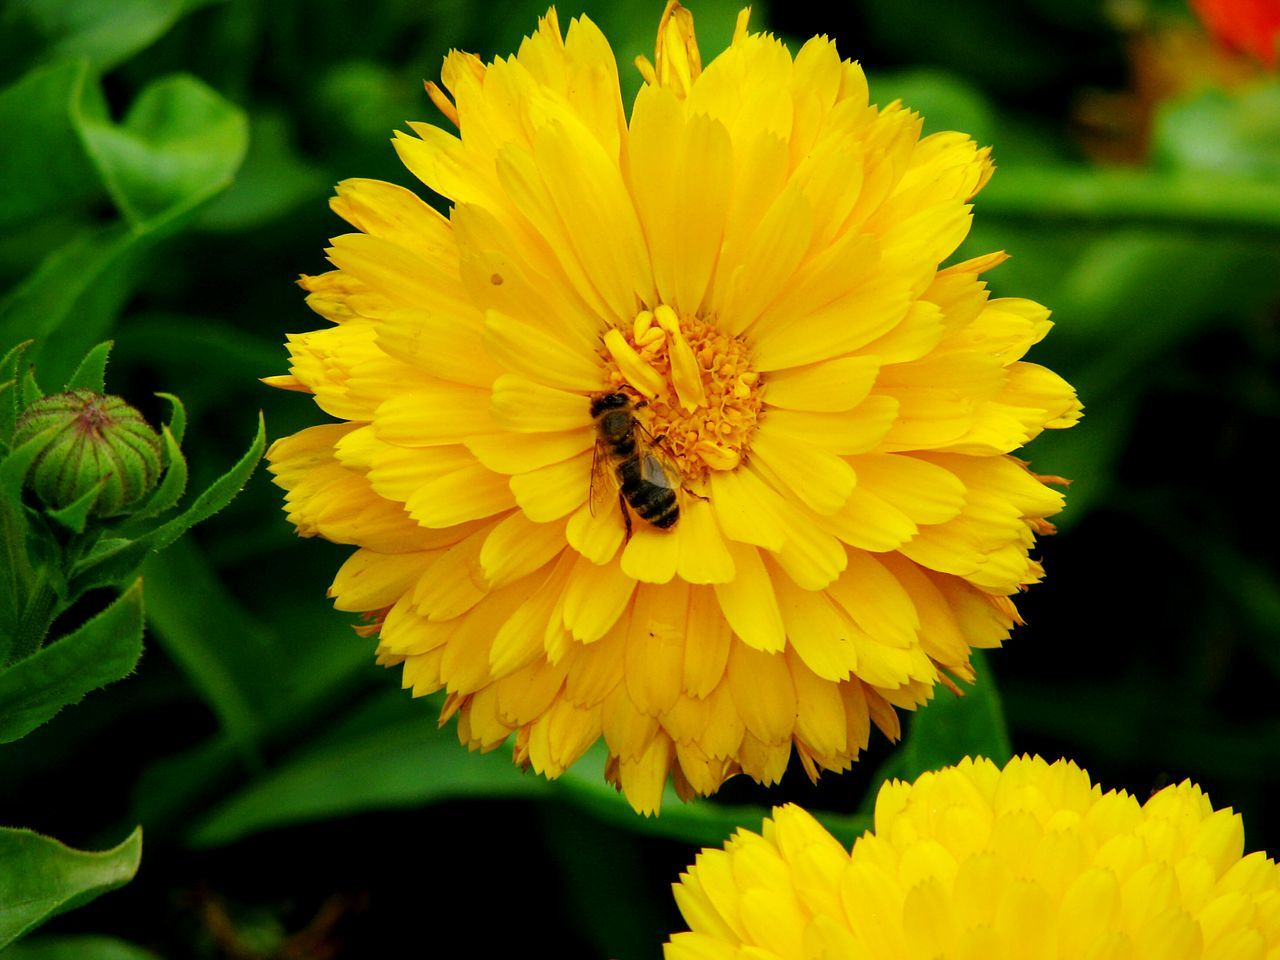 flower, yellow, insect, petal, animal themes, one animal, animals in the wild, bee, fragility, nature, beauty in nature, freshness, flower head, animal wildlife, outdoors, growth, honey bee, pollination, plant, close-up, day, no people, buzzing